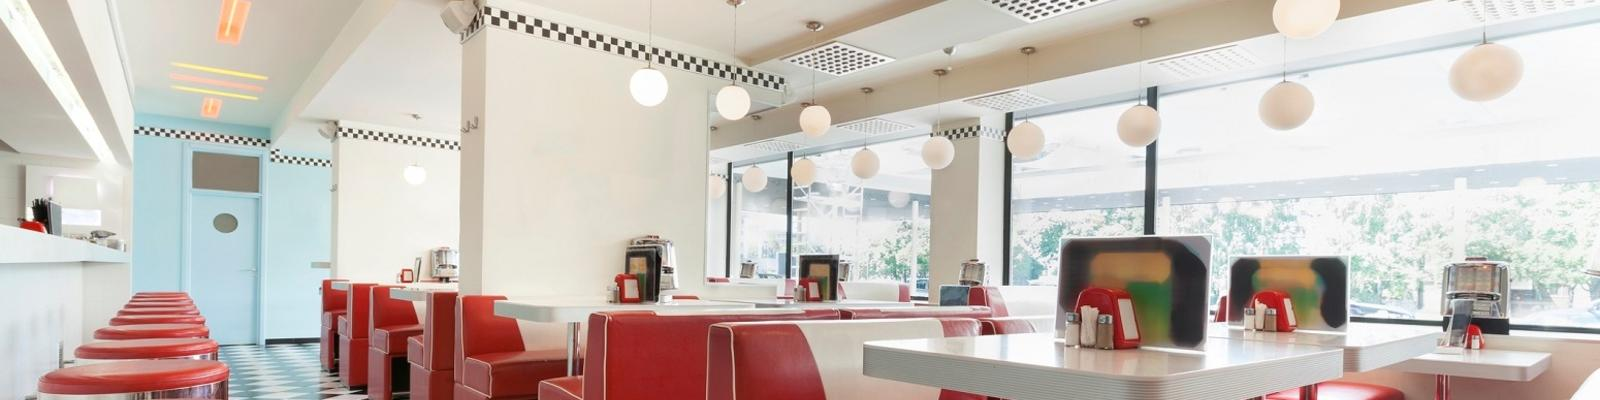 An American diner restaurant style in black and white tiles and red booths. Photo: Getty Images.